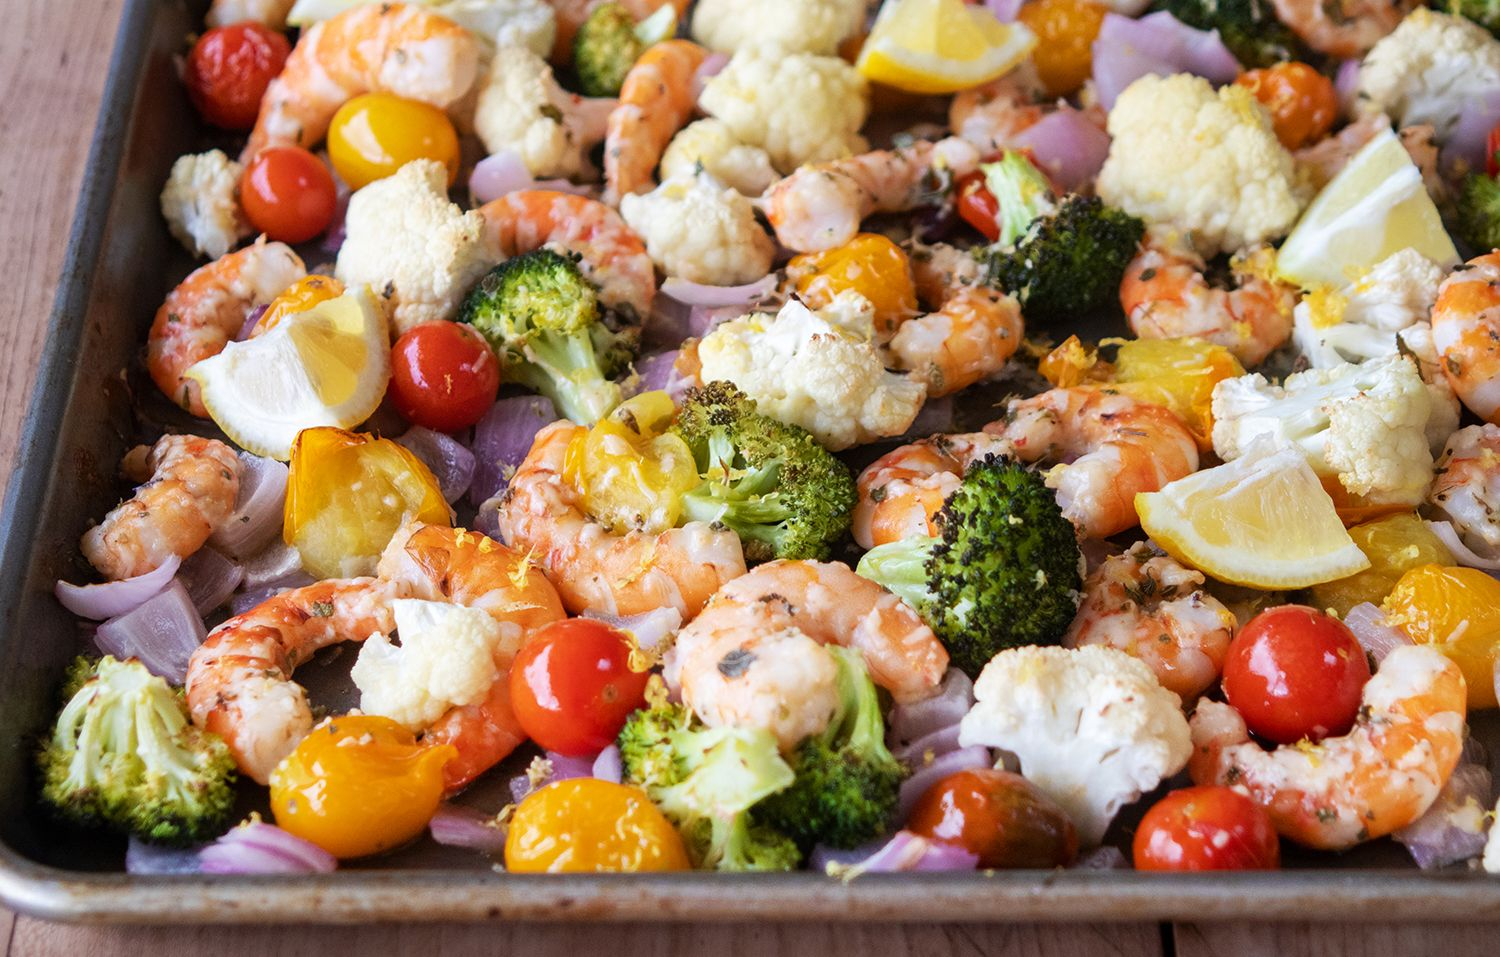 Sheet Pan Dinners To Make Cooking Easy This Summer images